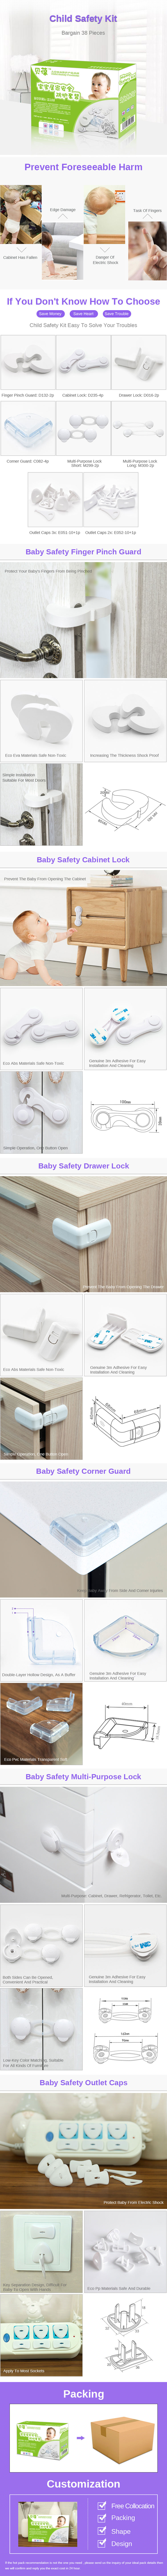 Cabinet Lock, Baby Proofing Kit including Outlet Plugs , Corner Guards and Cabinet Latches